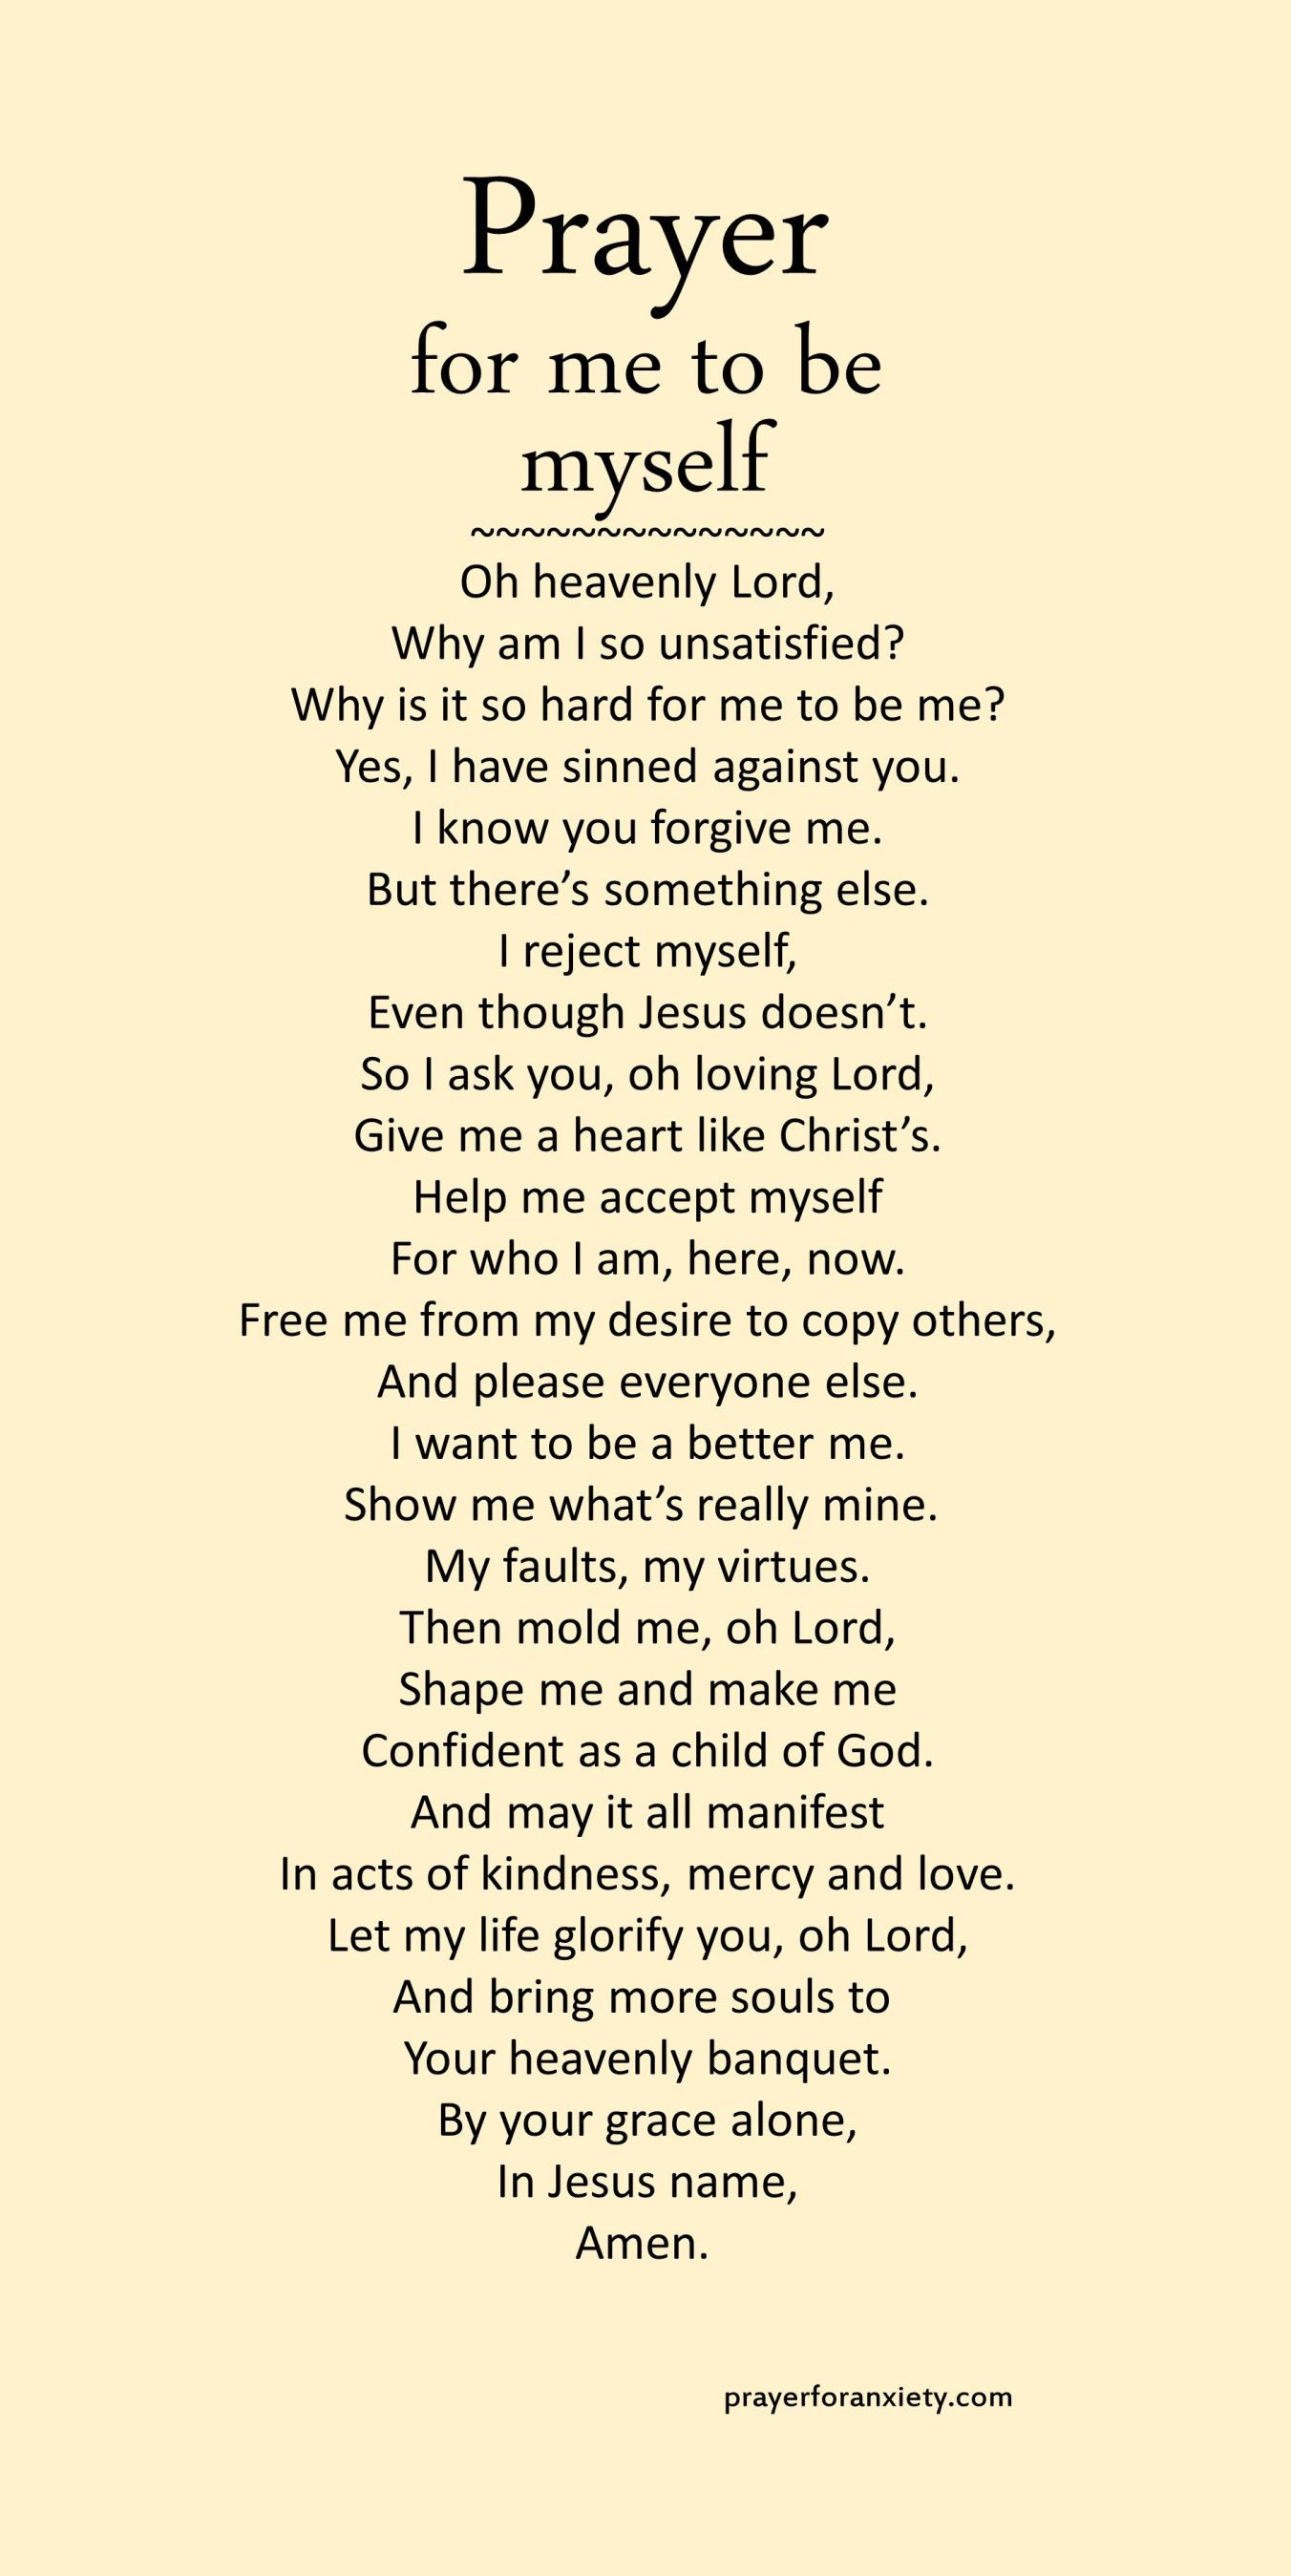 Prayer for me to be myself